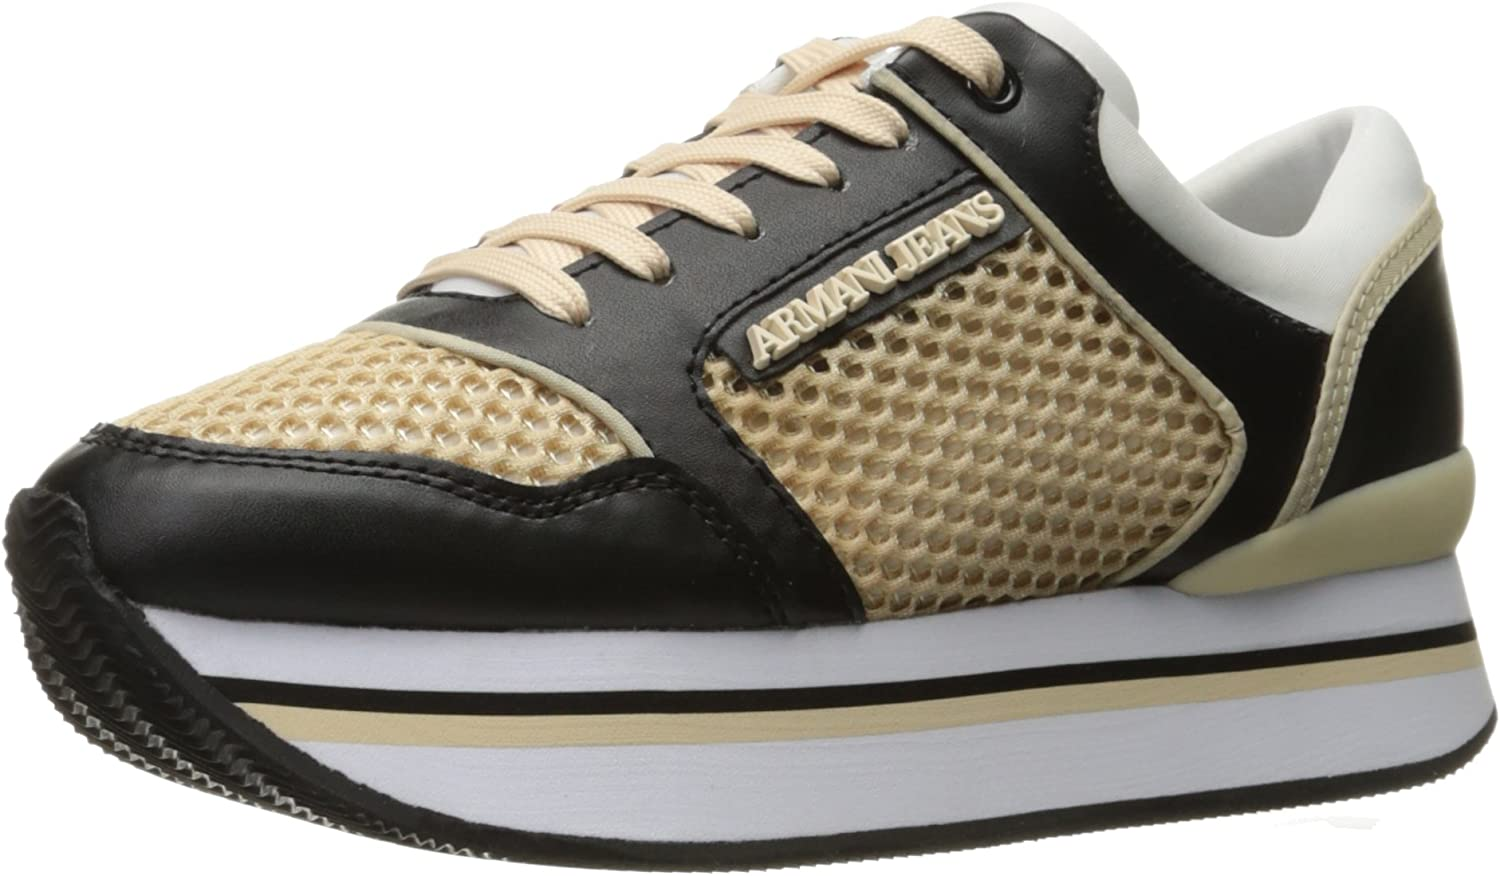 ARMANI JEANS Womens Double Decker Sneaker Fashion Sneaker